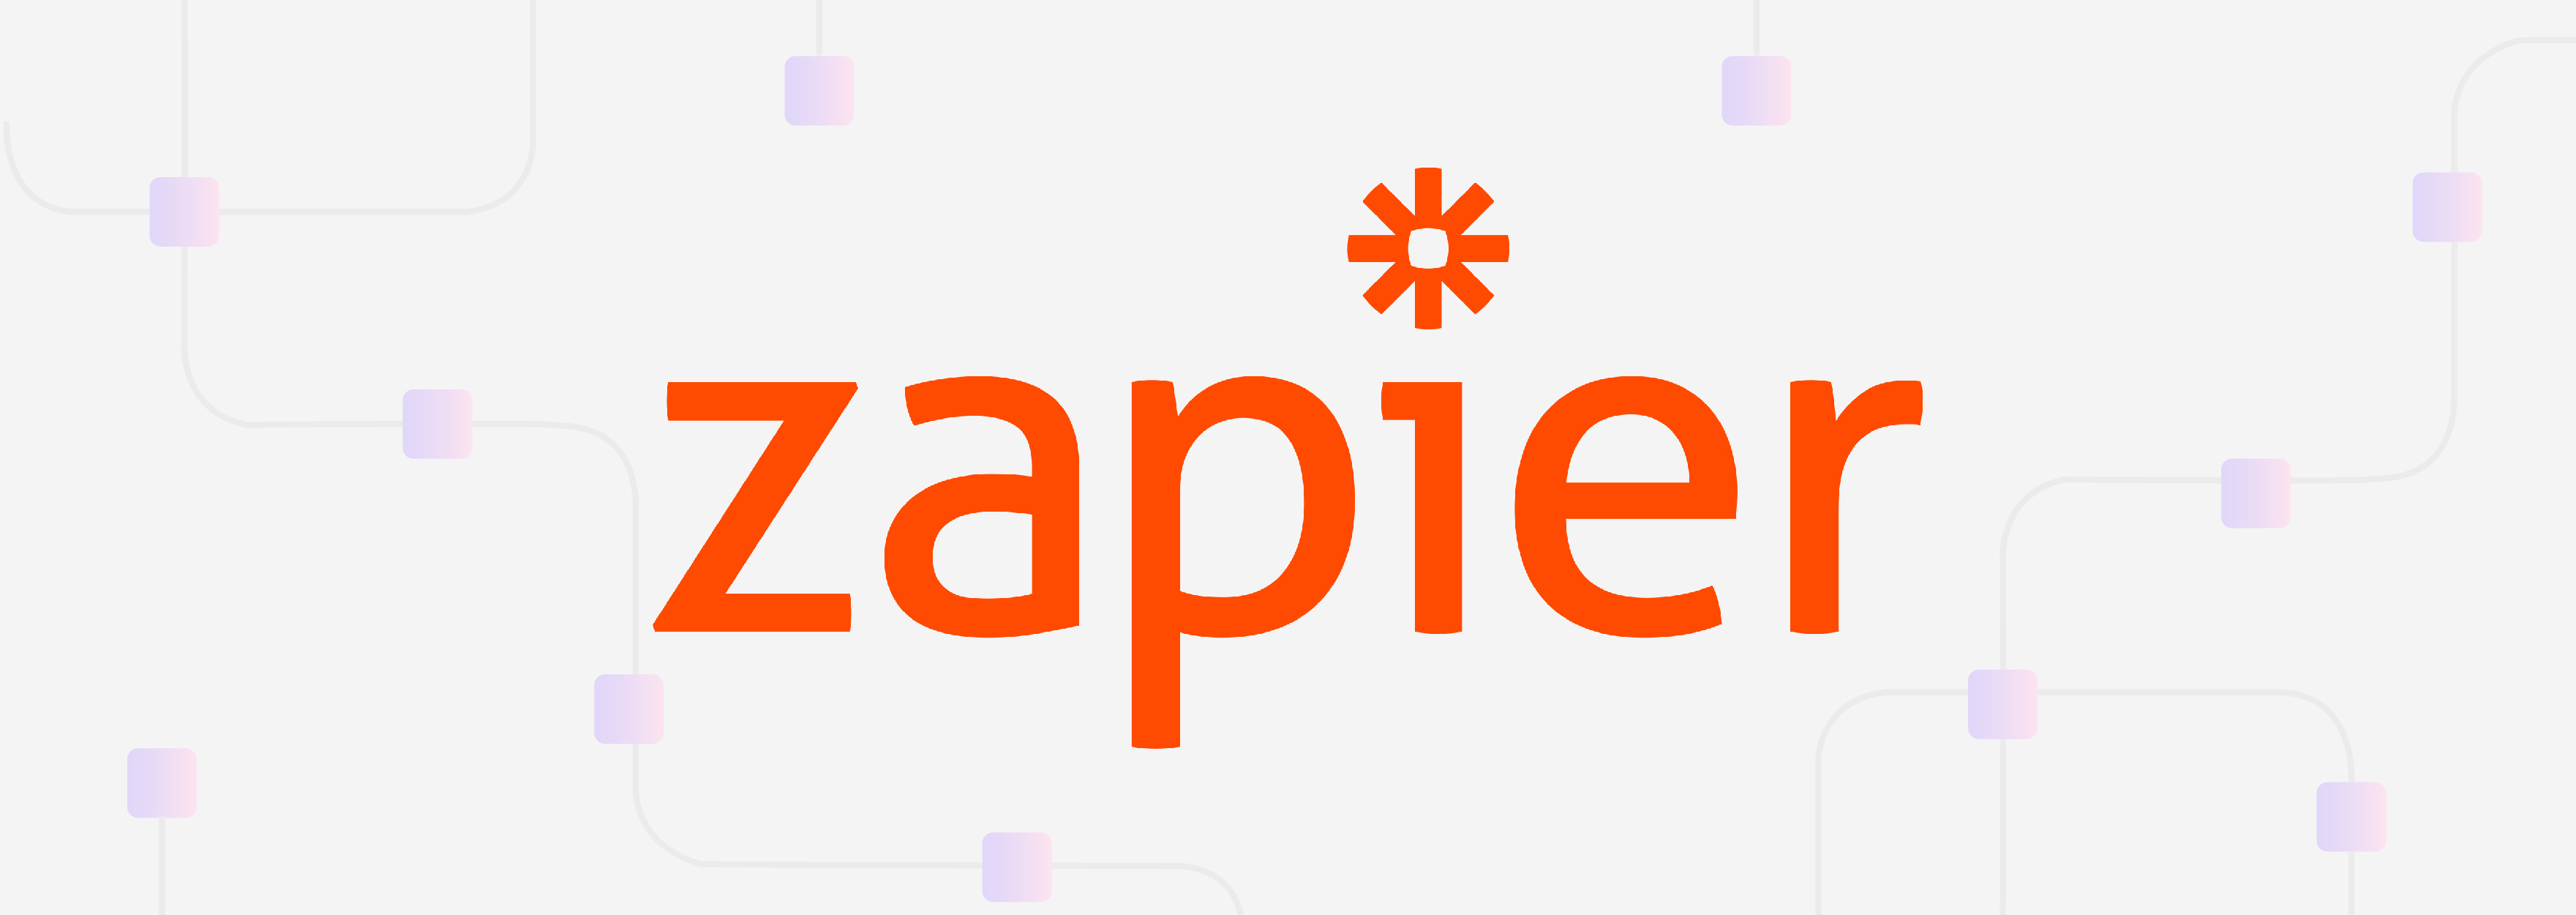 Easy integrations are possible with Zapier